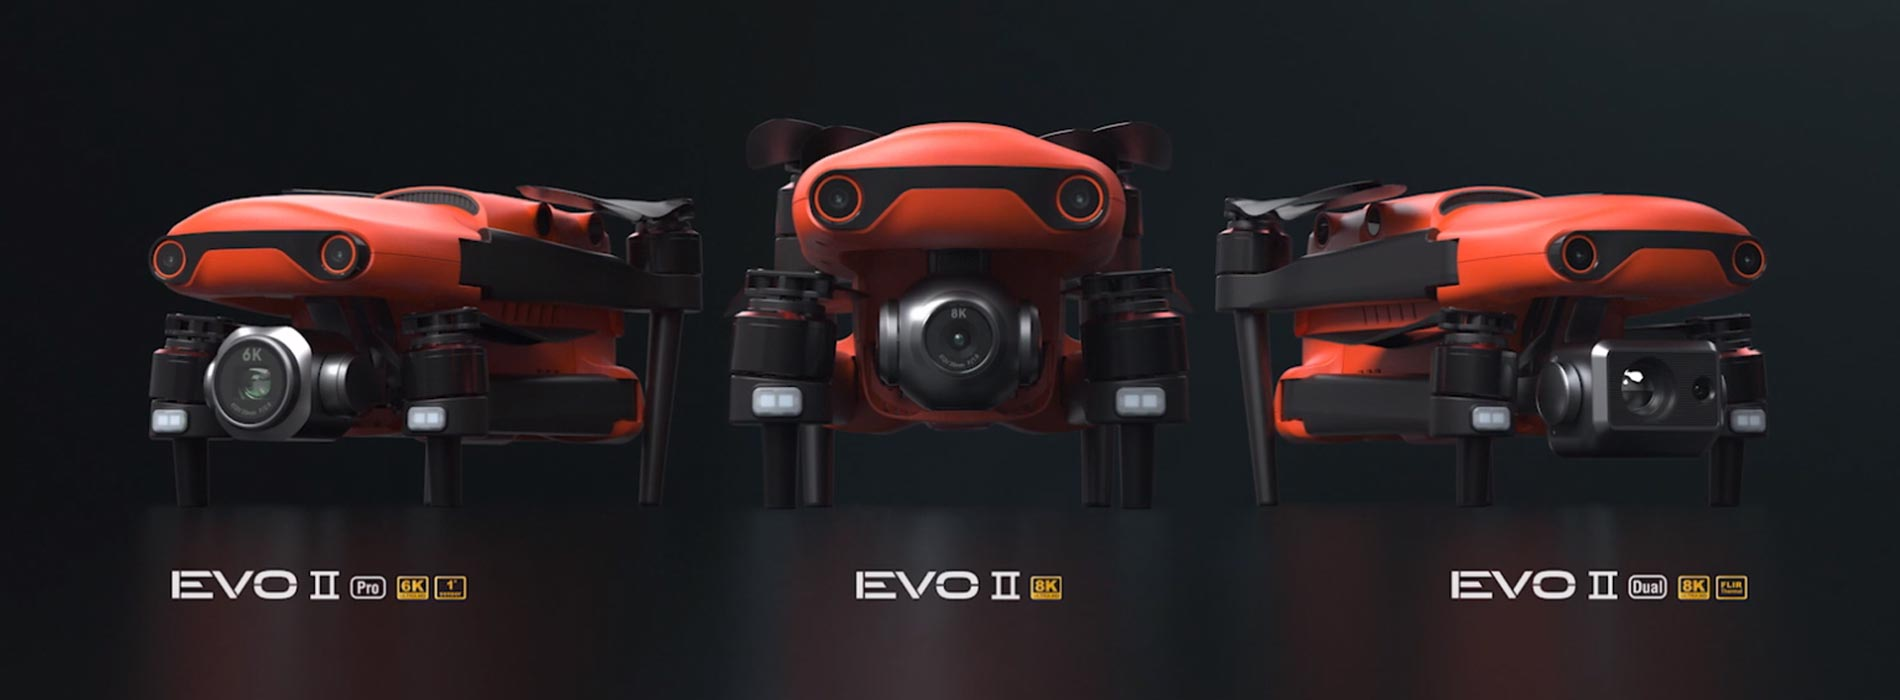 Drone Autel EVO II: 8K camera, 40 minutes of flight, 12 sensors, 9k away and ...